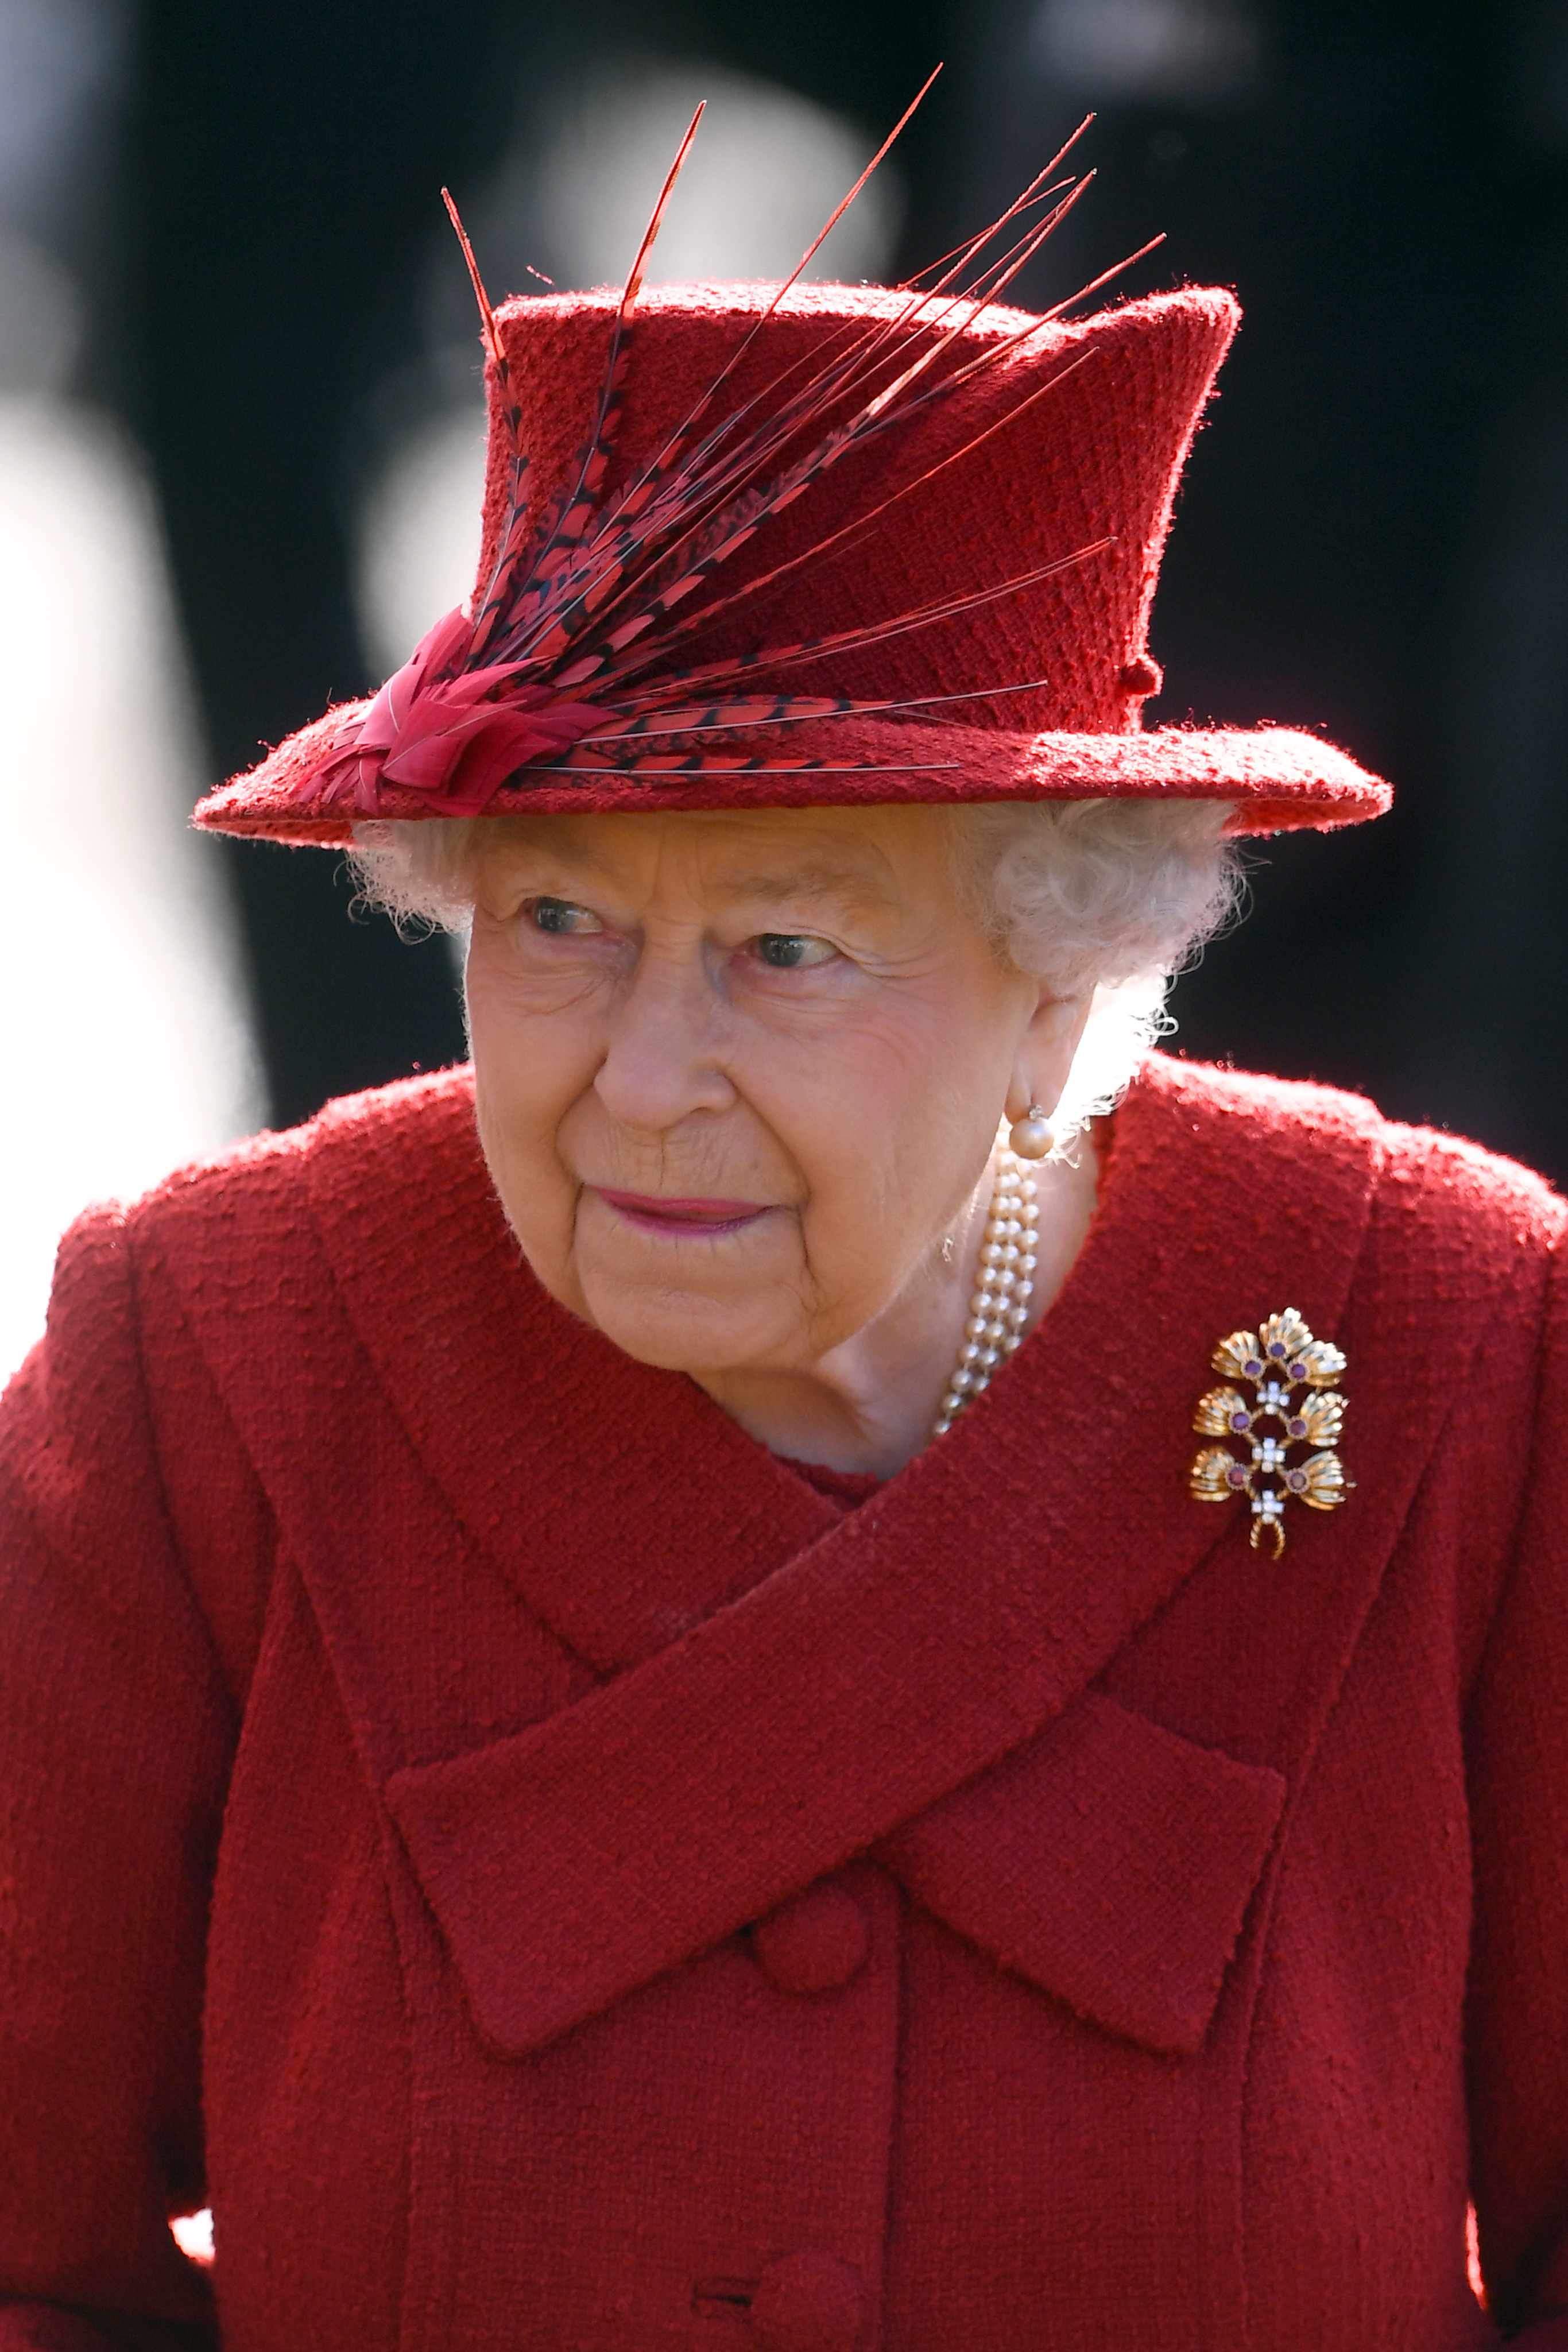 File photo dated 04/02/18 of Queen Elizabeth II. The Queen will host crisis talks with senior royals and the Duke of Sussex on Monday in a bid to find a solution to Meghan and Harry's future roles.